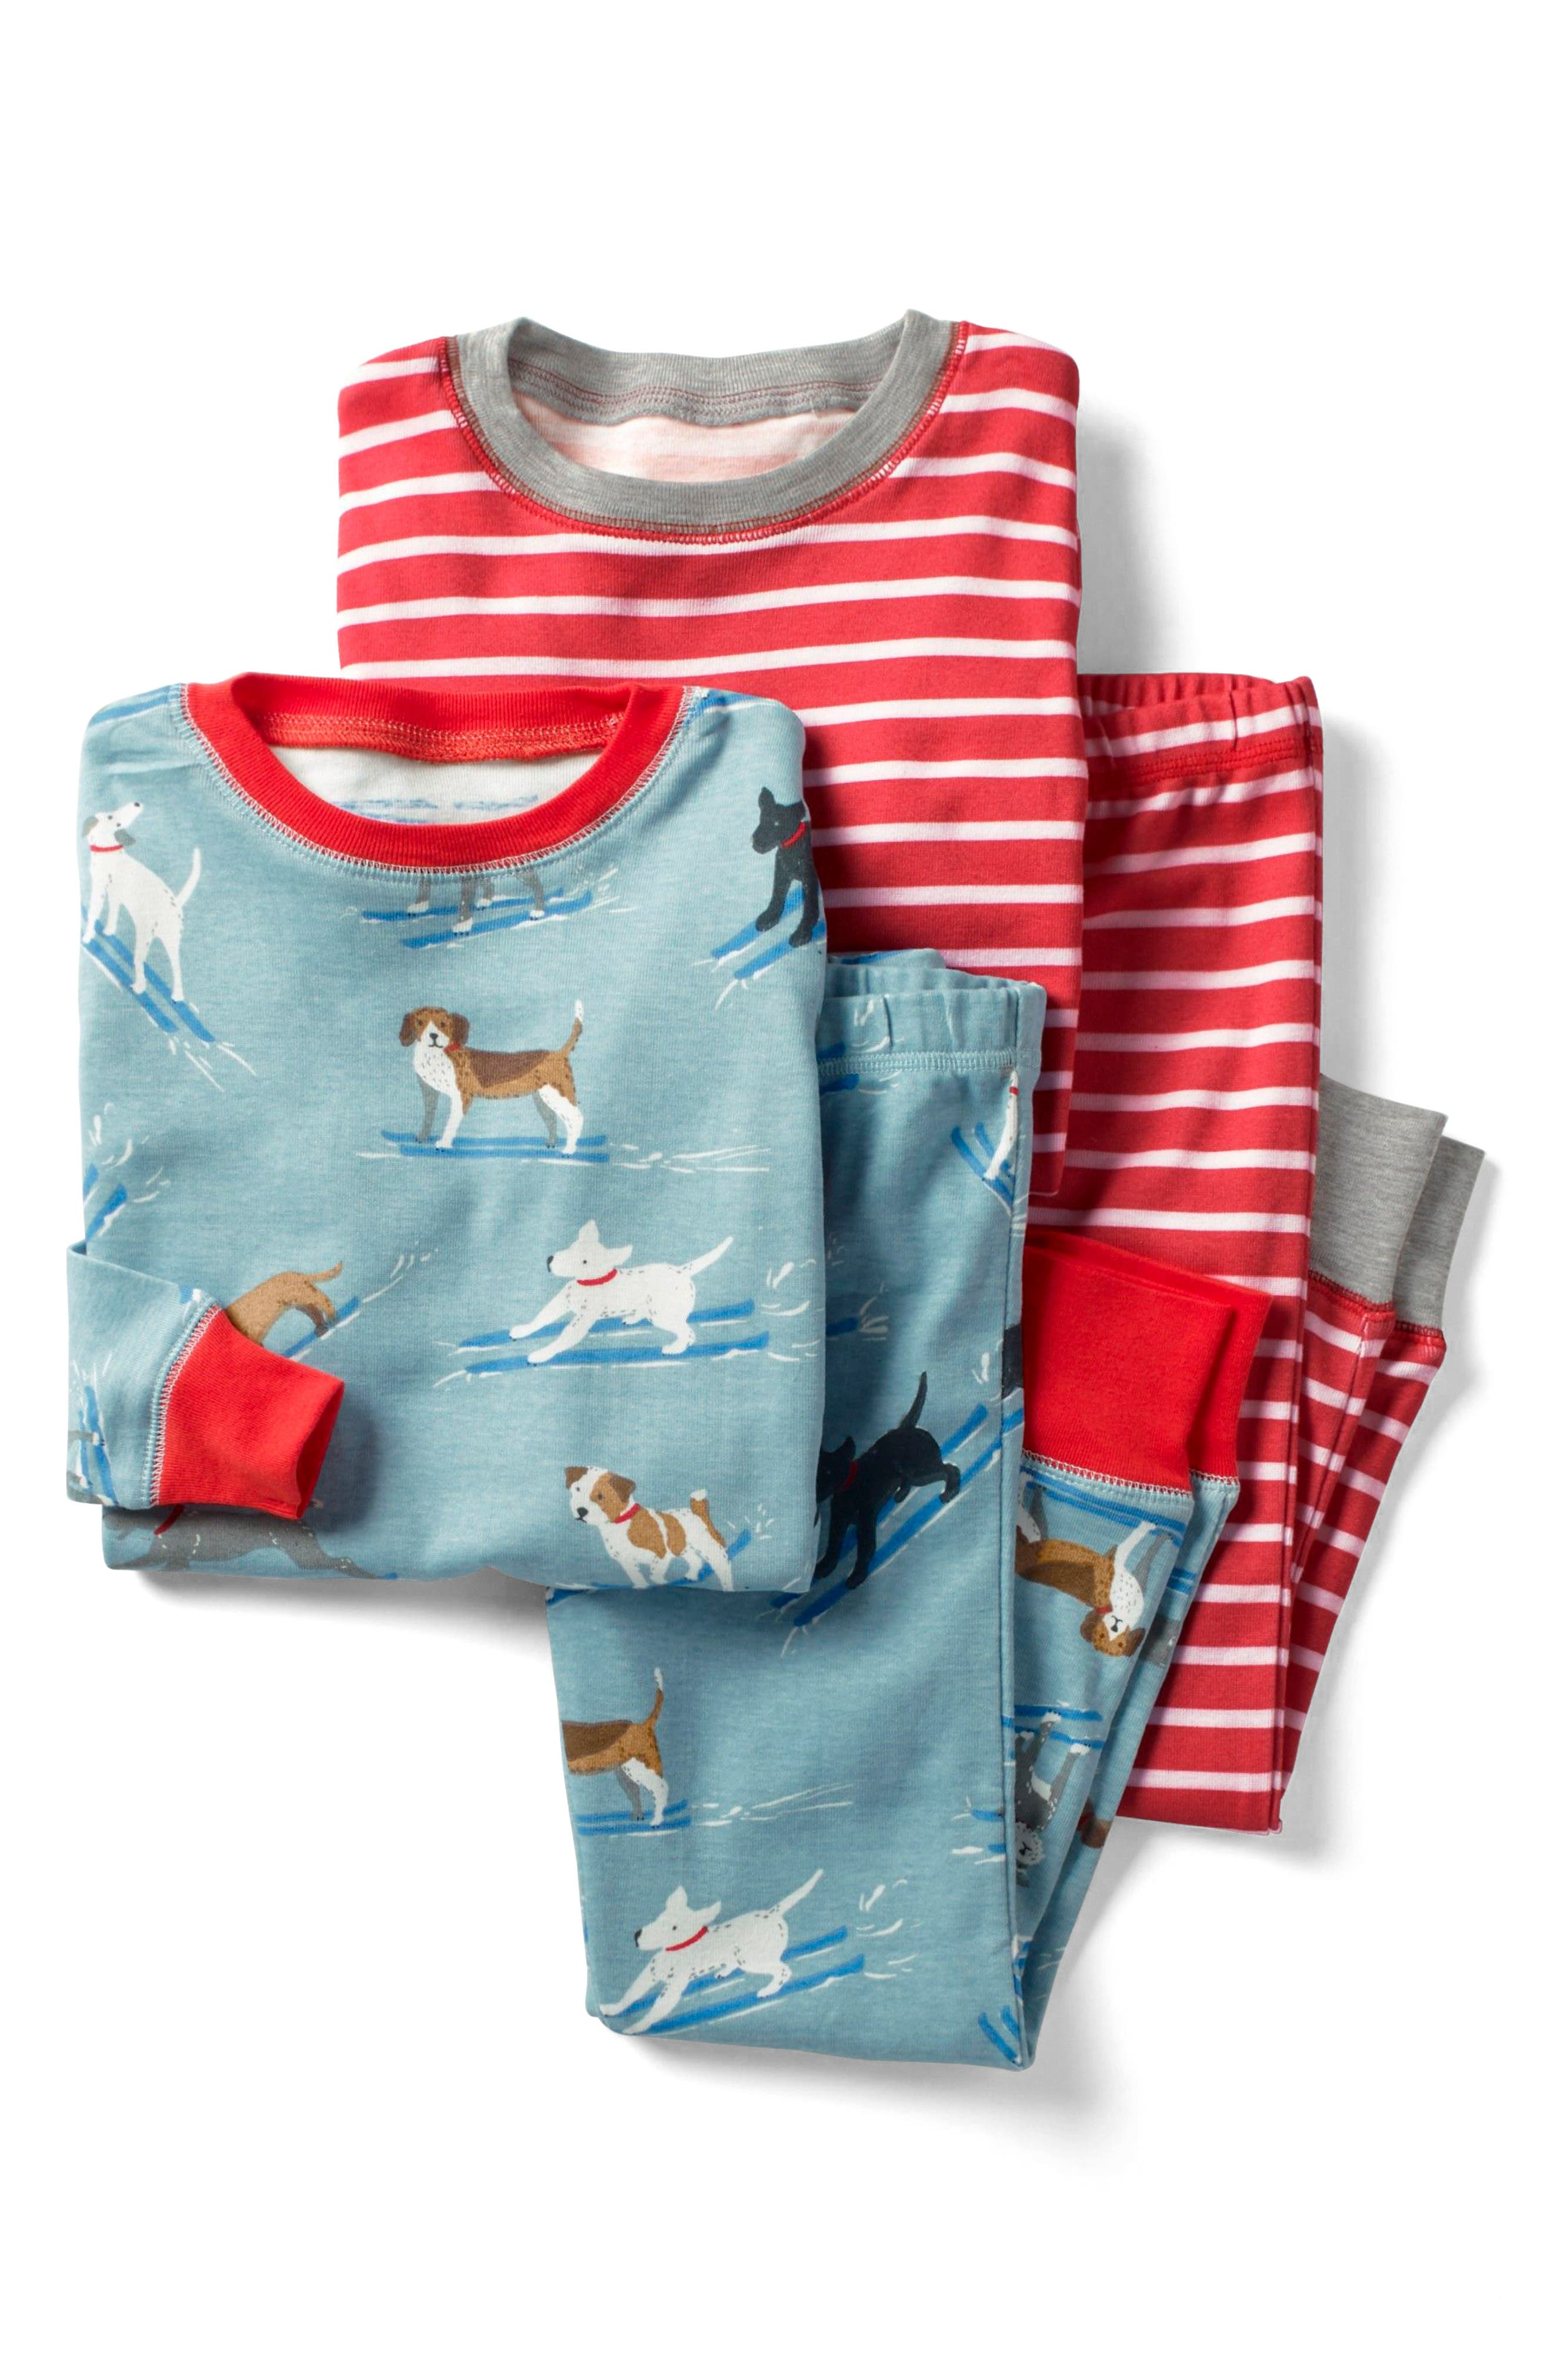 Alternate Image 1 Selected - Mini Boden Cosy 2-Pack Two-Piece Fitted Pajamas (Toddler Boys, Little Boys & Big Boys)